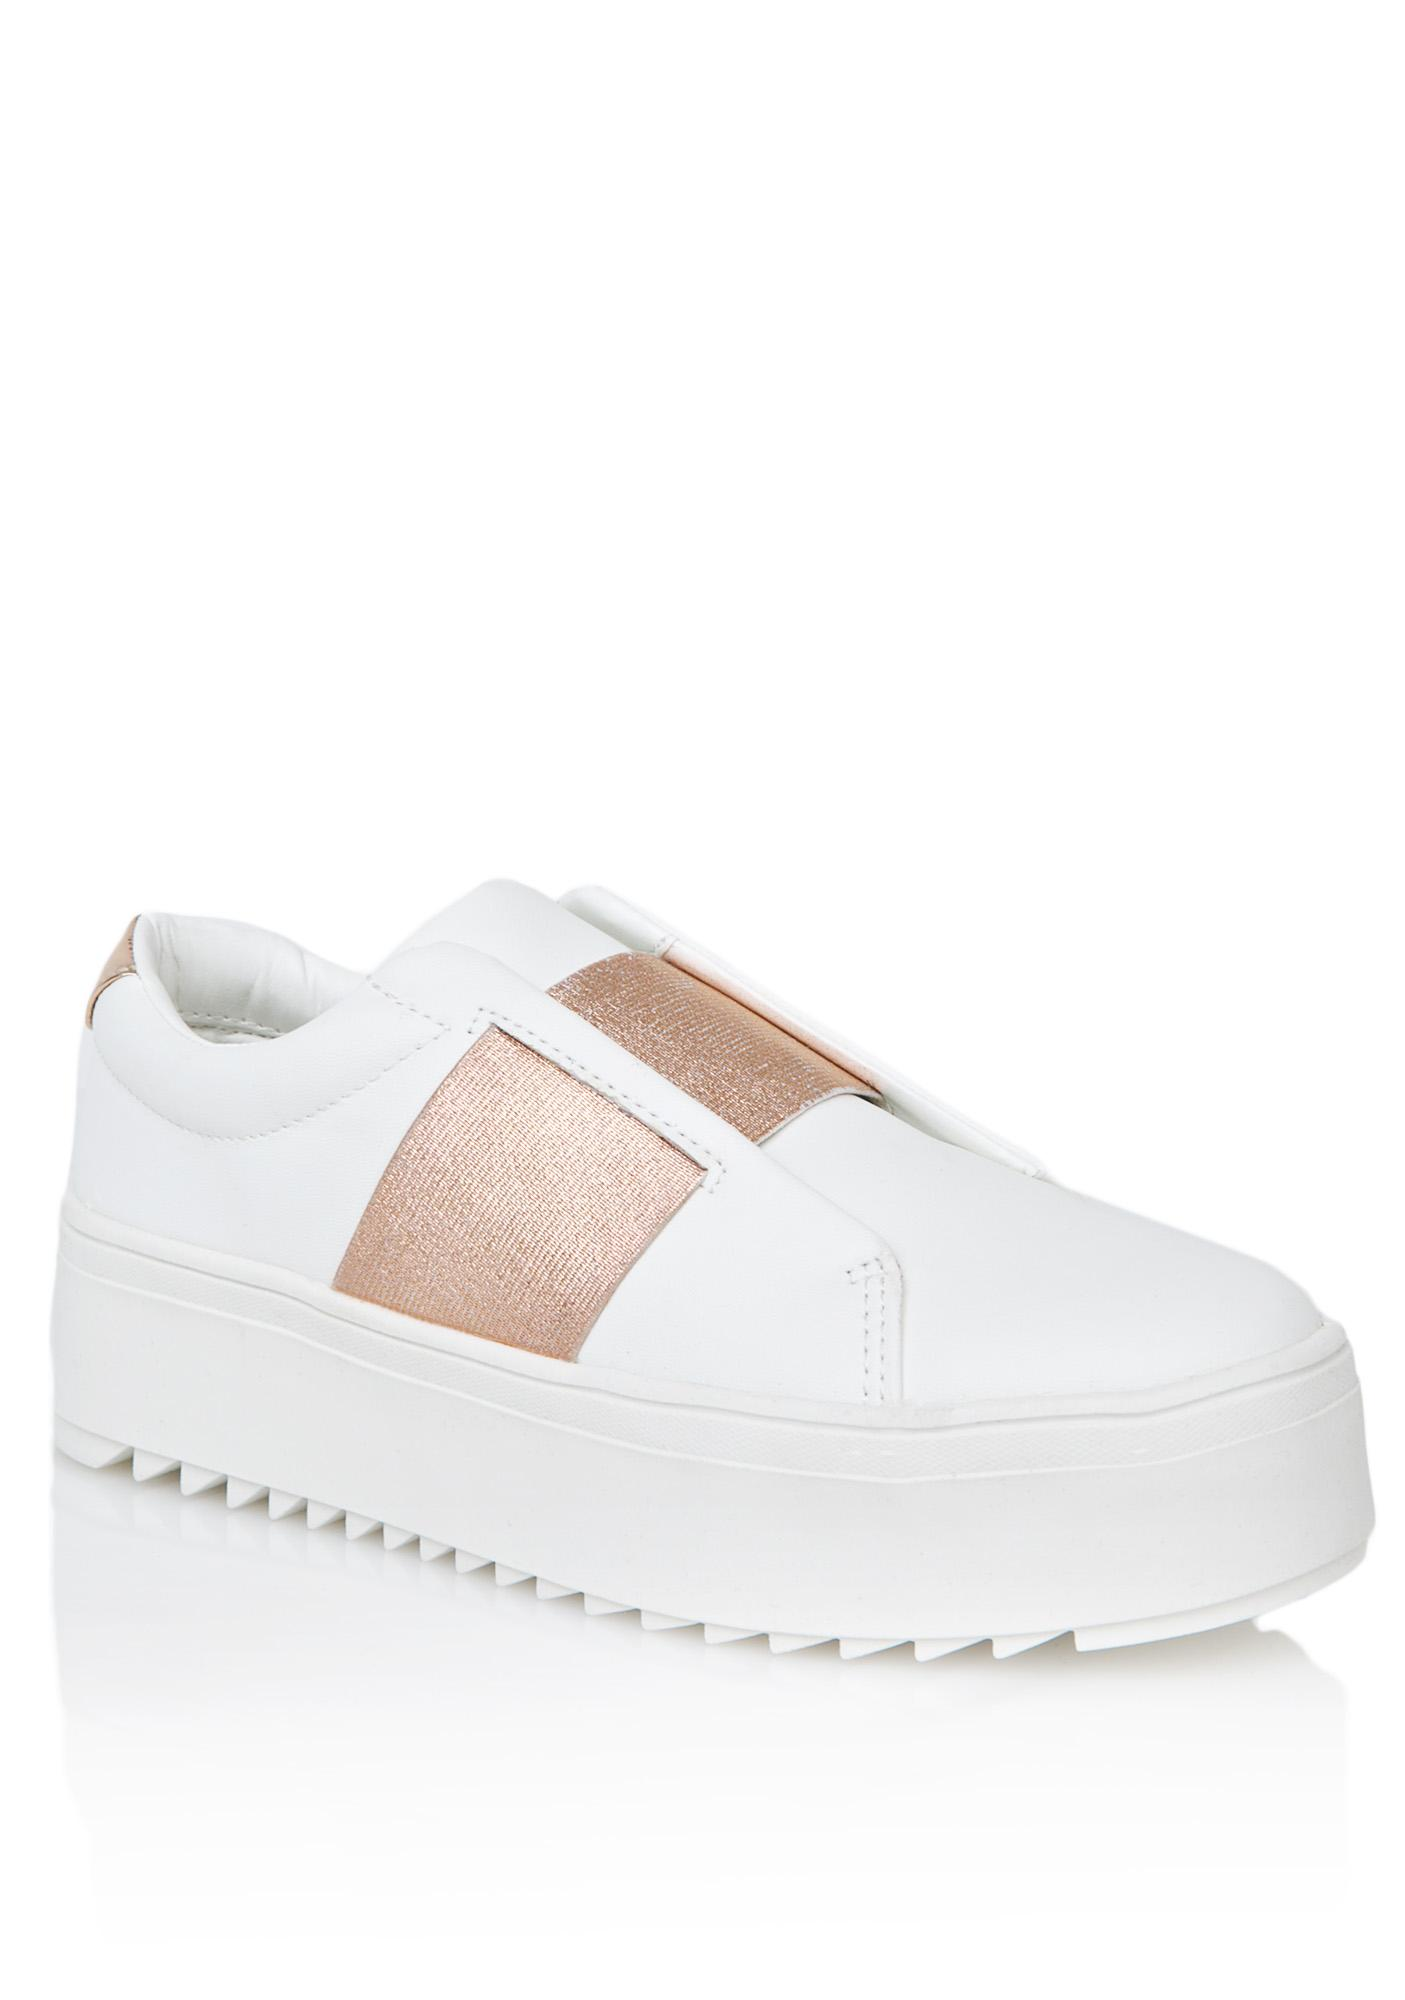 Lust For Life Battle Metallic Sneakers